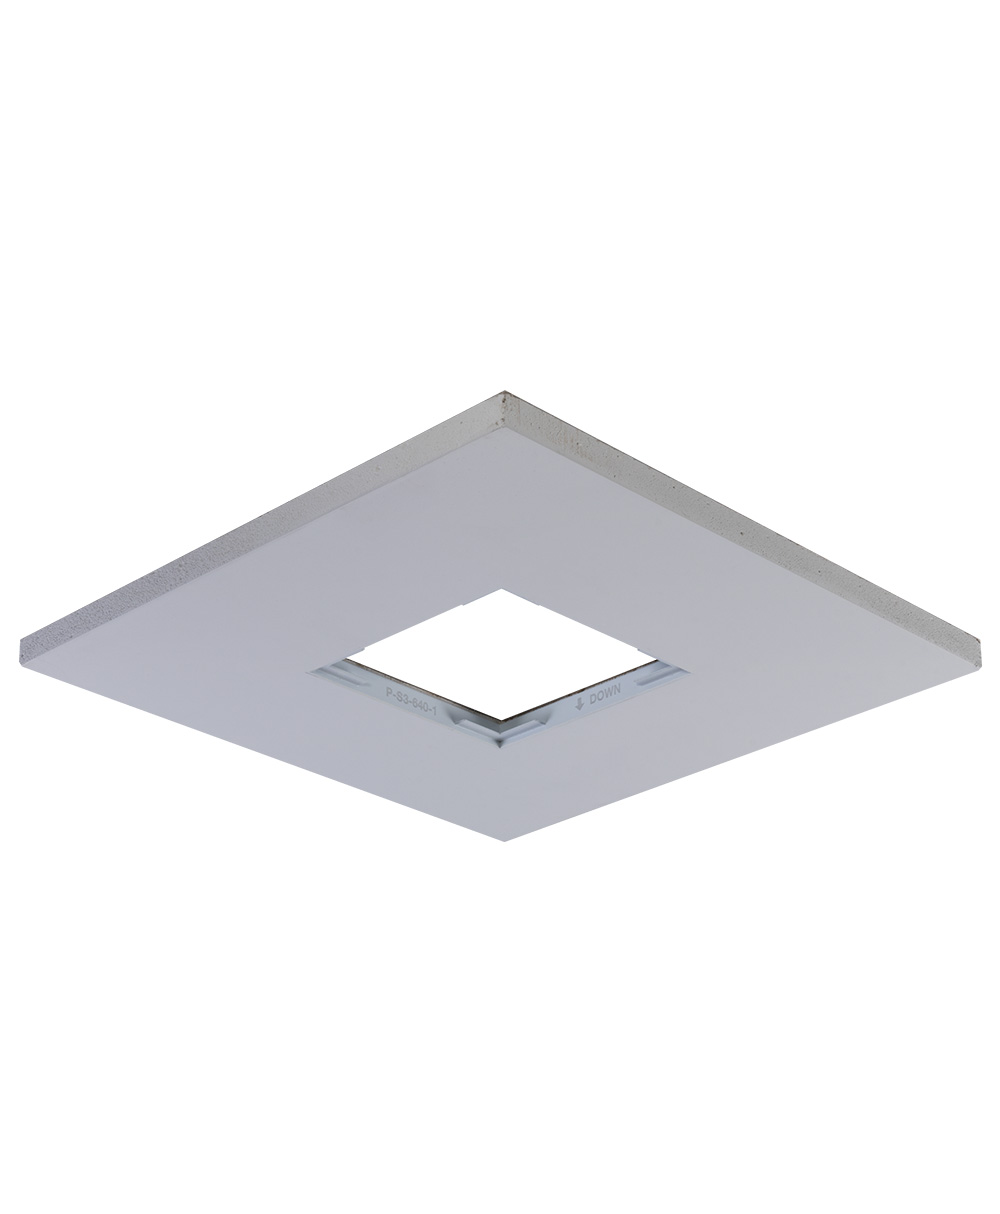 Sigma 3 Square Pulldown LED Fixture